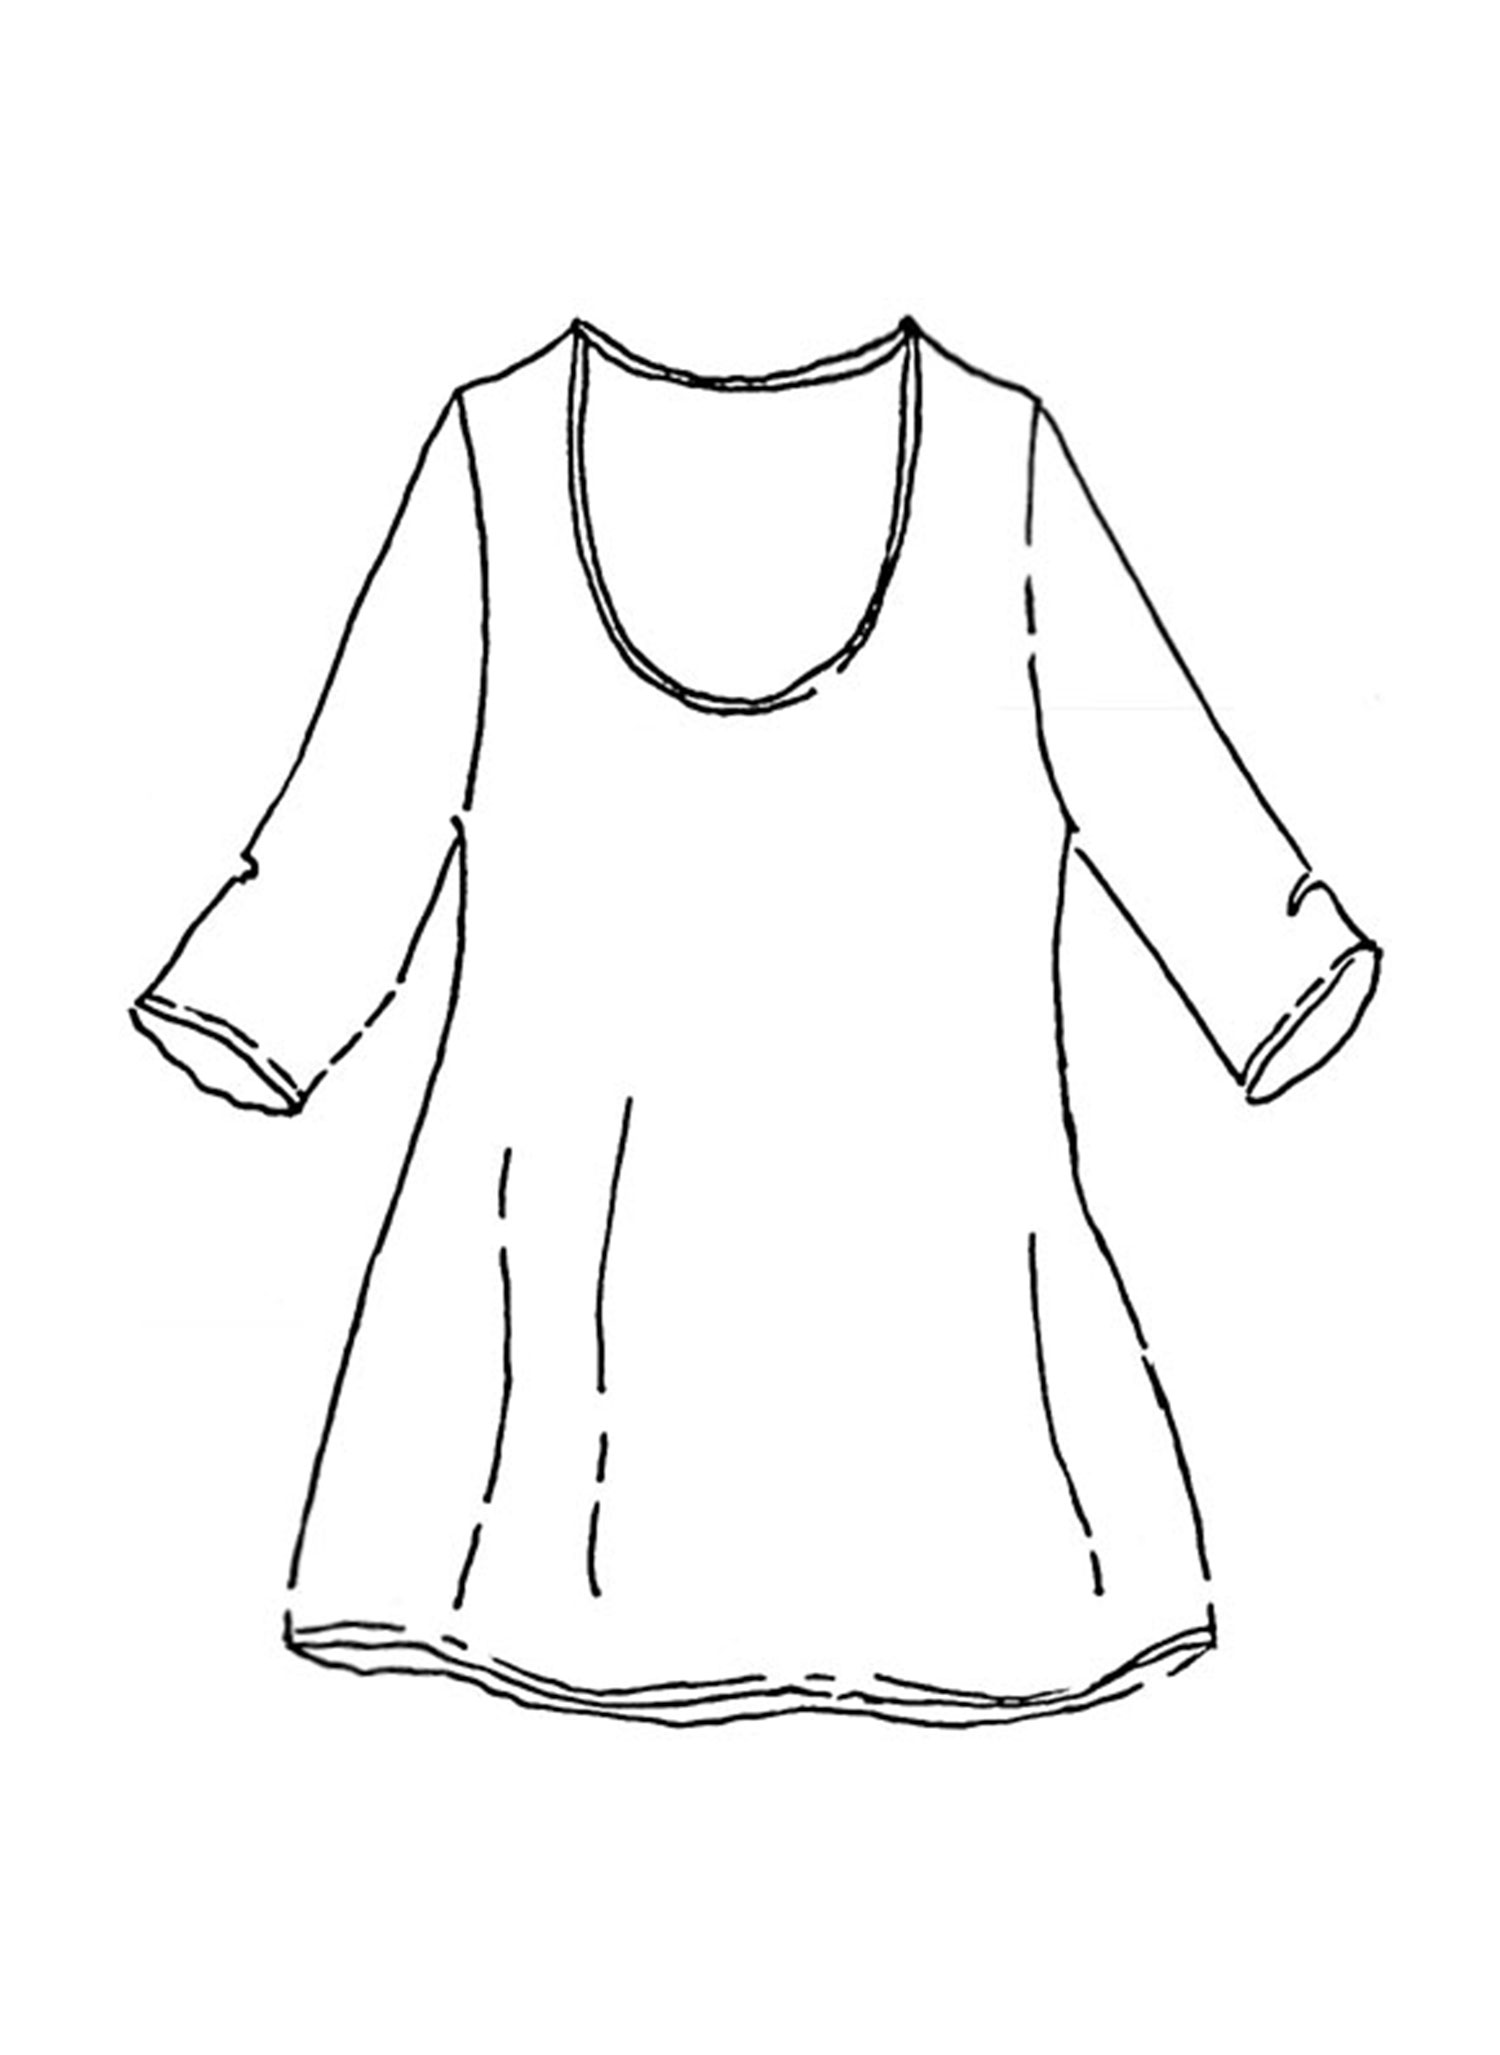 3/4 Sleeve Tunic sketch image